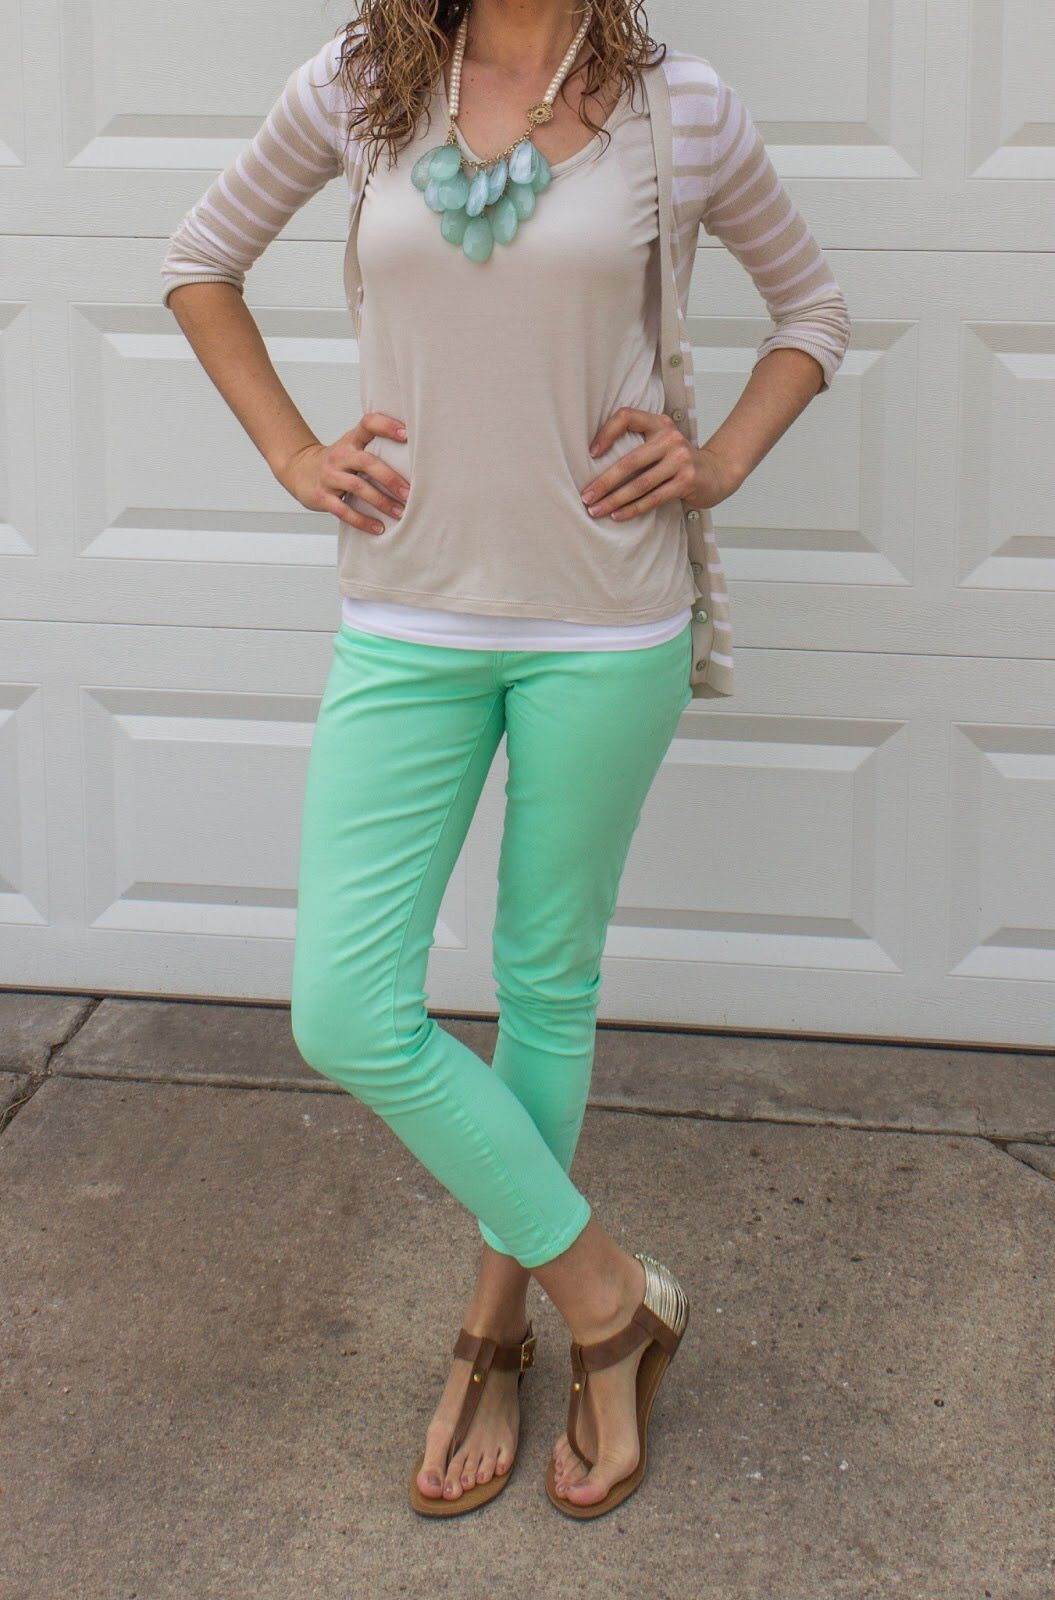 To acquire How to peach wear colored jeans pictures trends